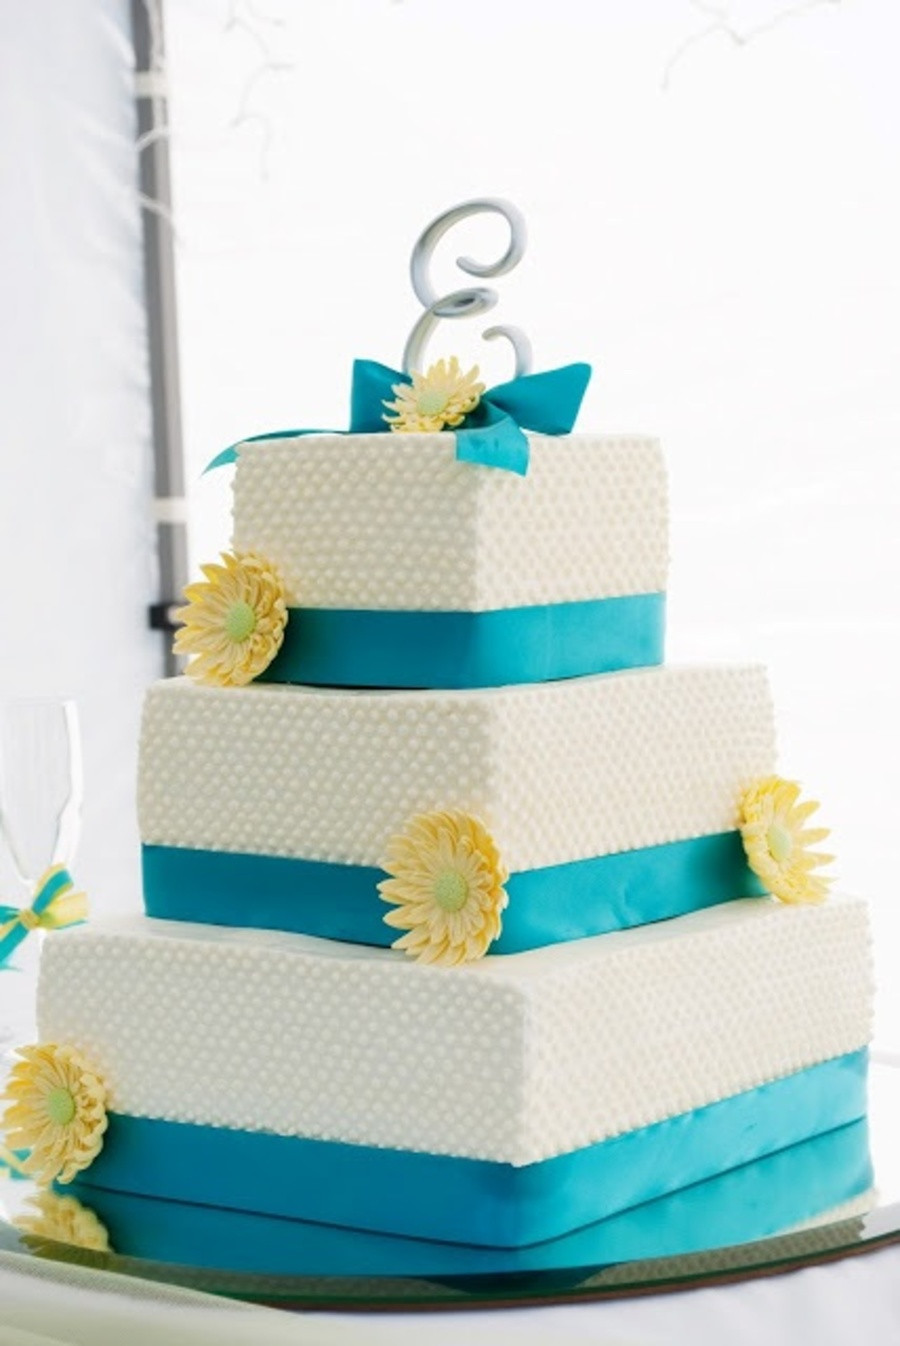 Turquoise And Yellow Wedding Cakes  Turquoise And Yellow Wedding Cake CakeCentral